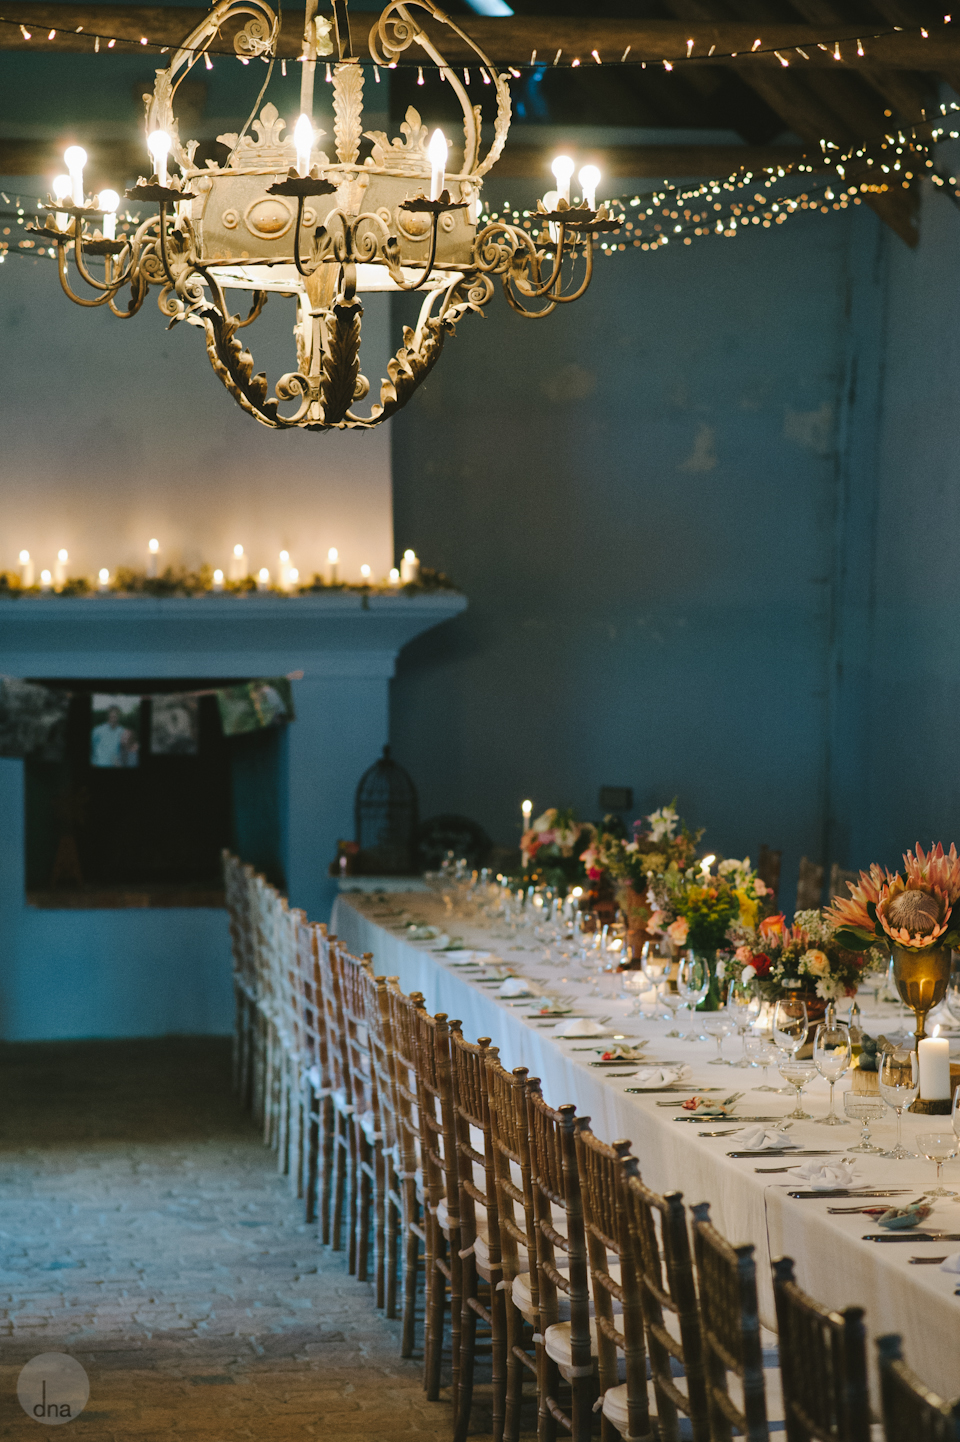 Chandeliers Candlelight Wedding Table Seating